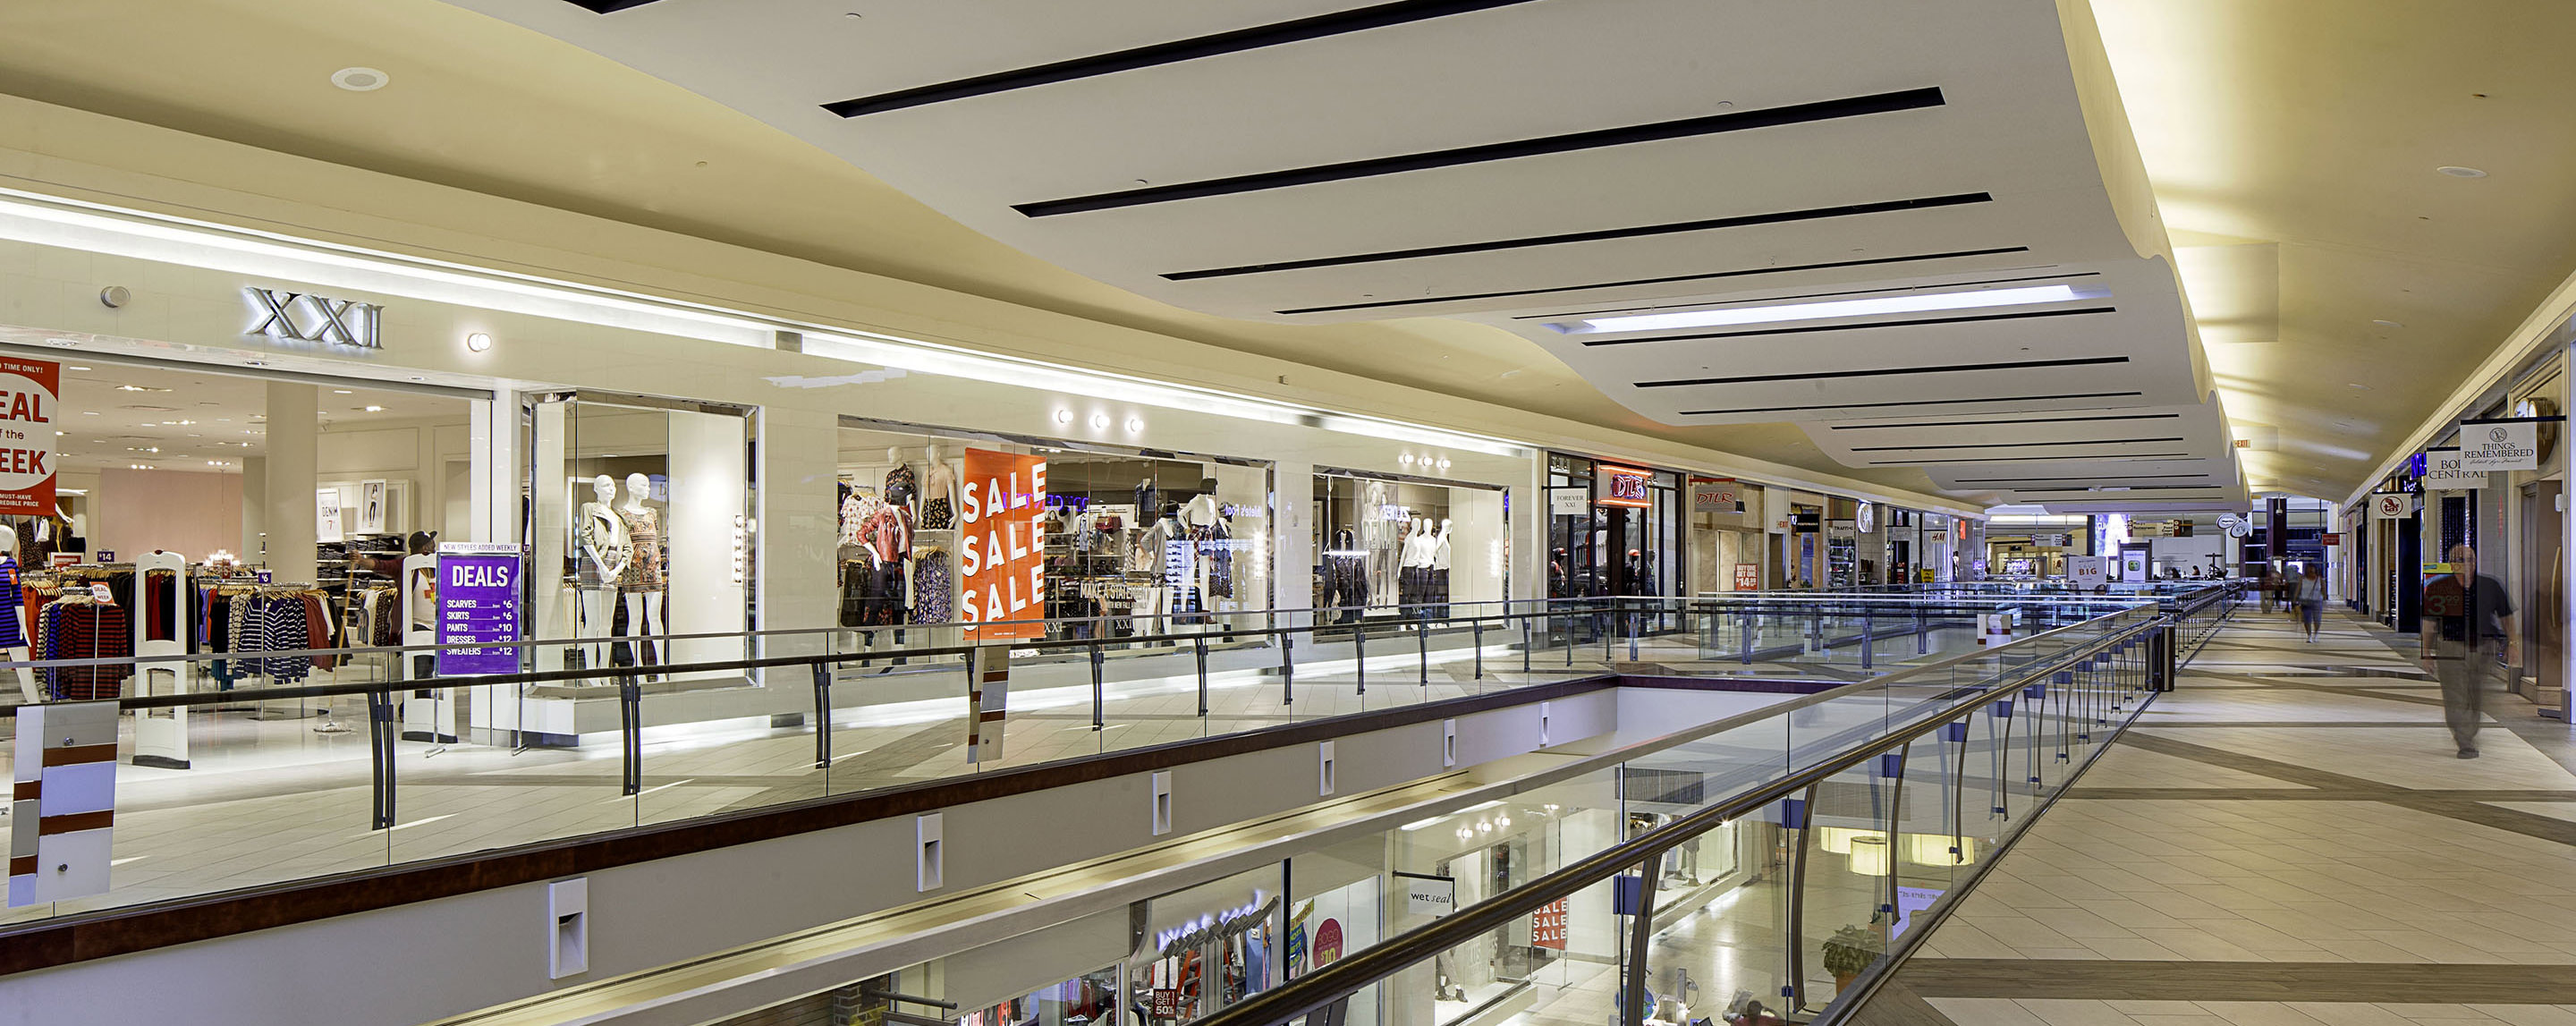 An upstairs walking inside Cumberland Mall is lined with store fronts, shoppers walking in hallways, and an opening to look at the floor below.